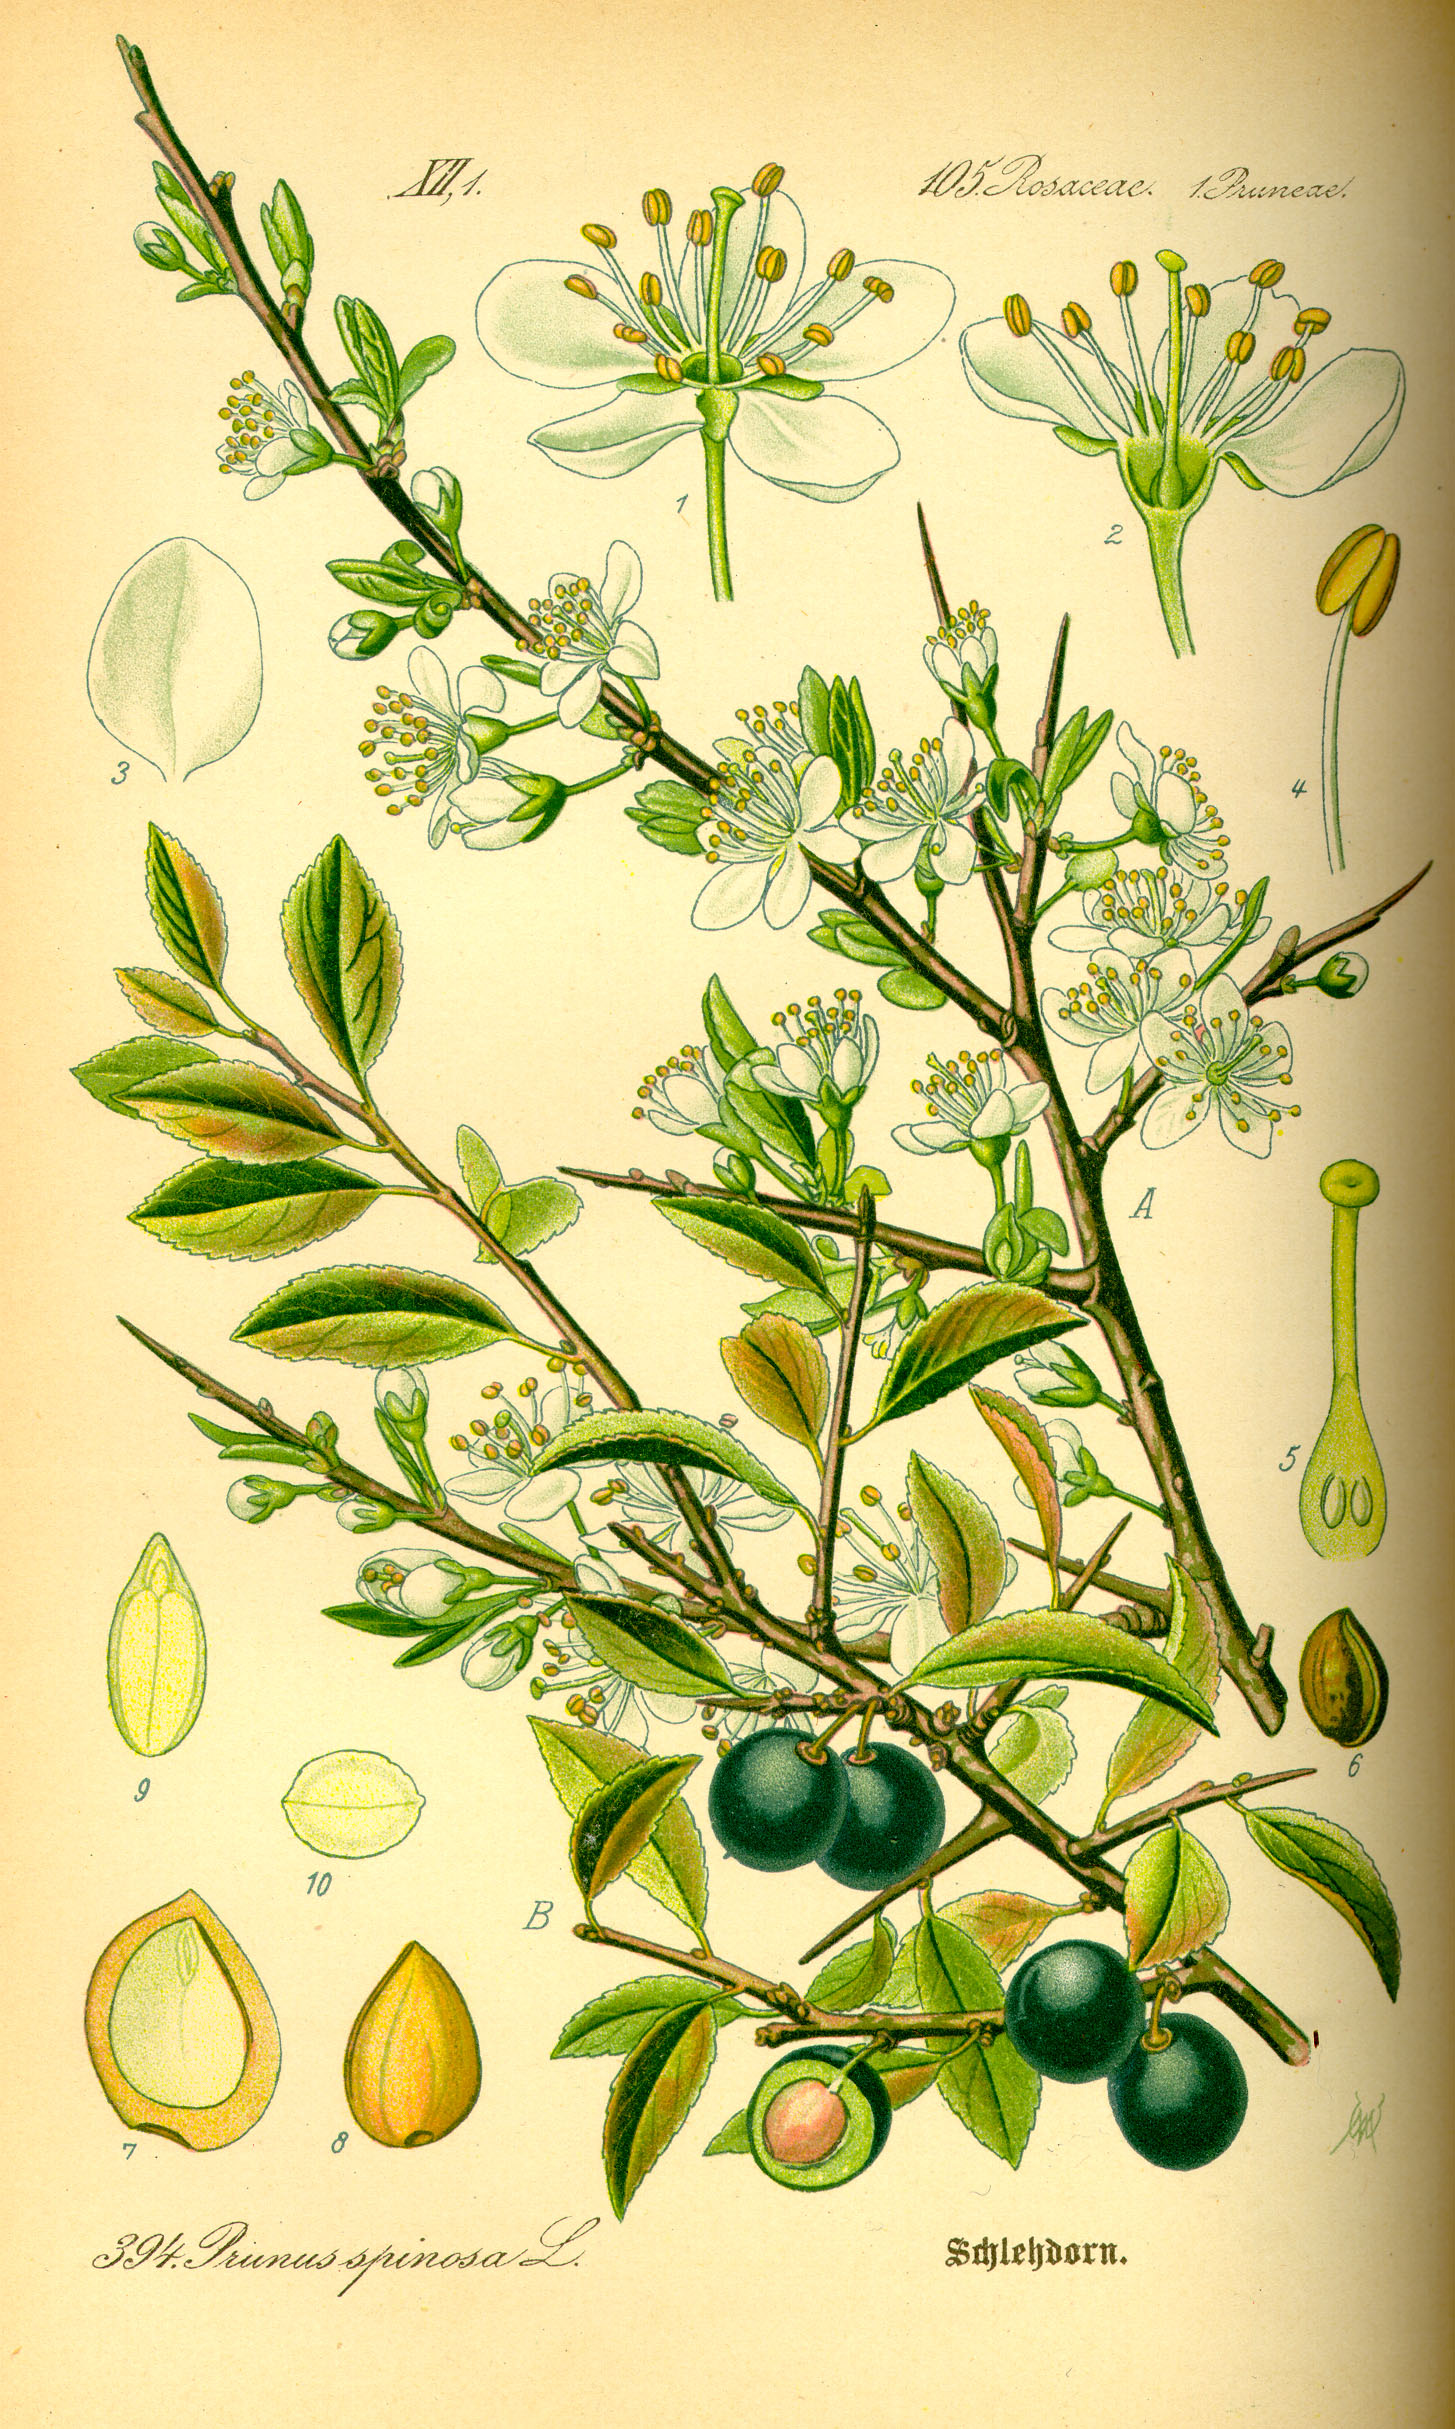 http://wildekraeuterey.de/images/Illustration_Prunus_spinosa0.jpg